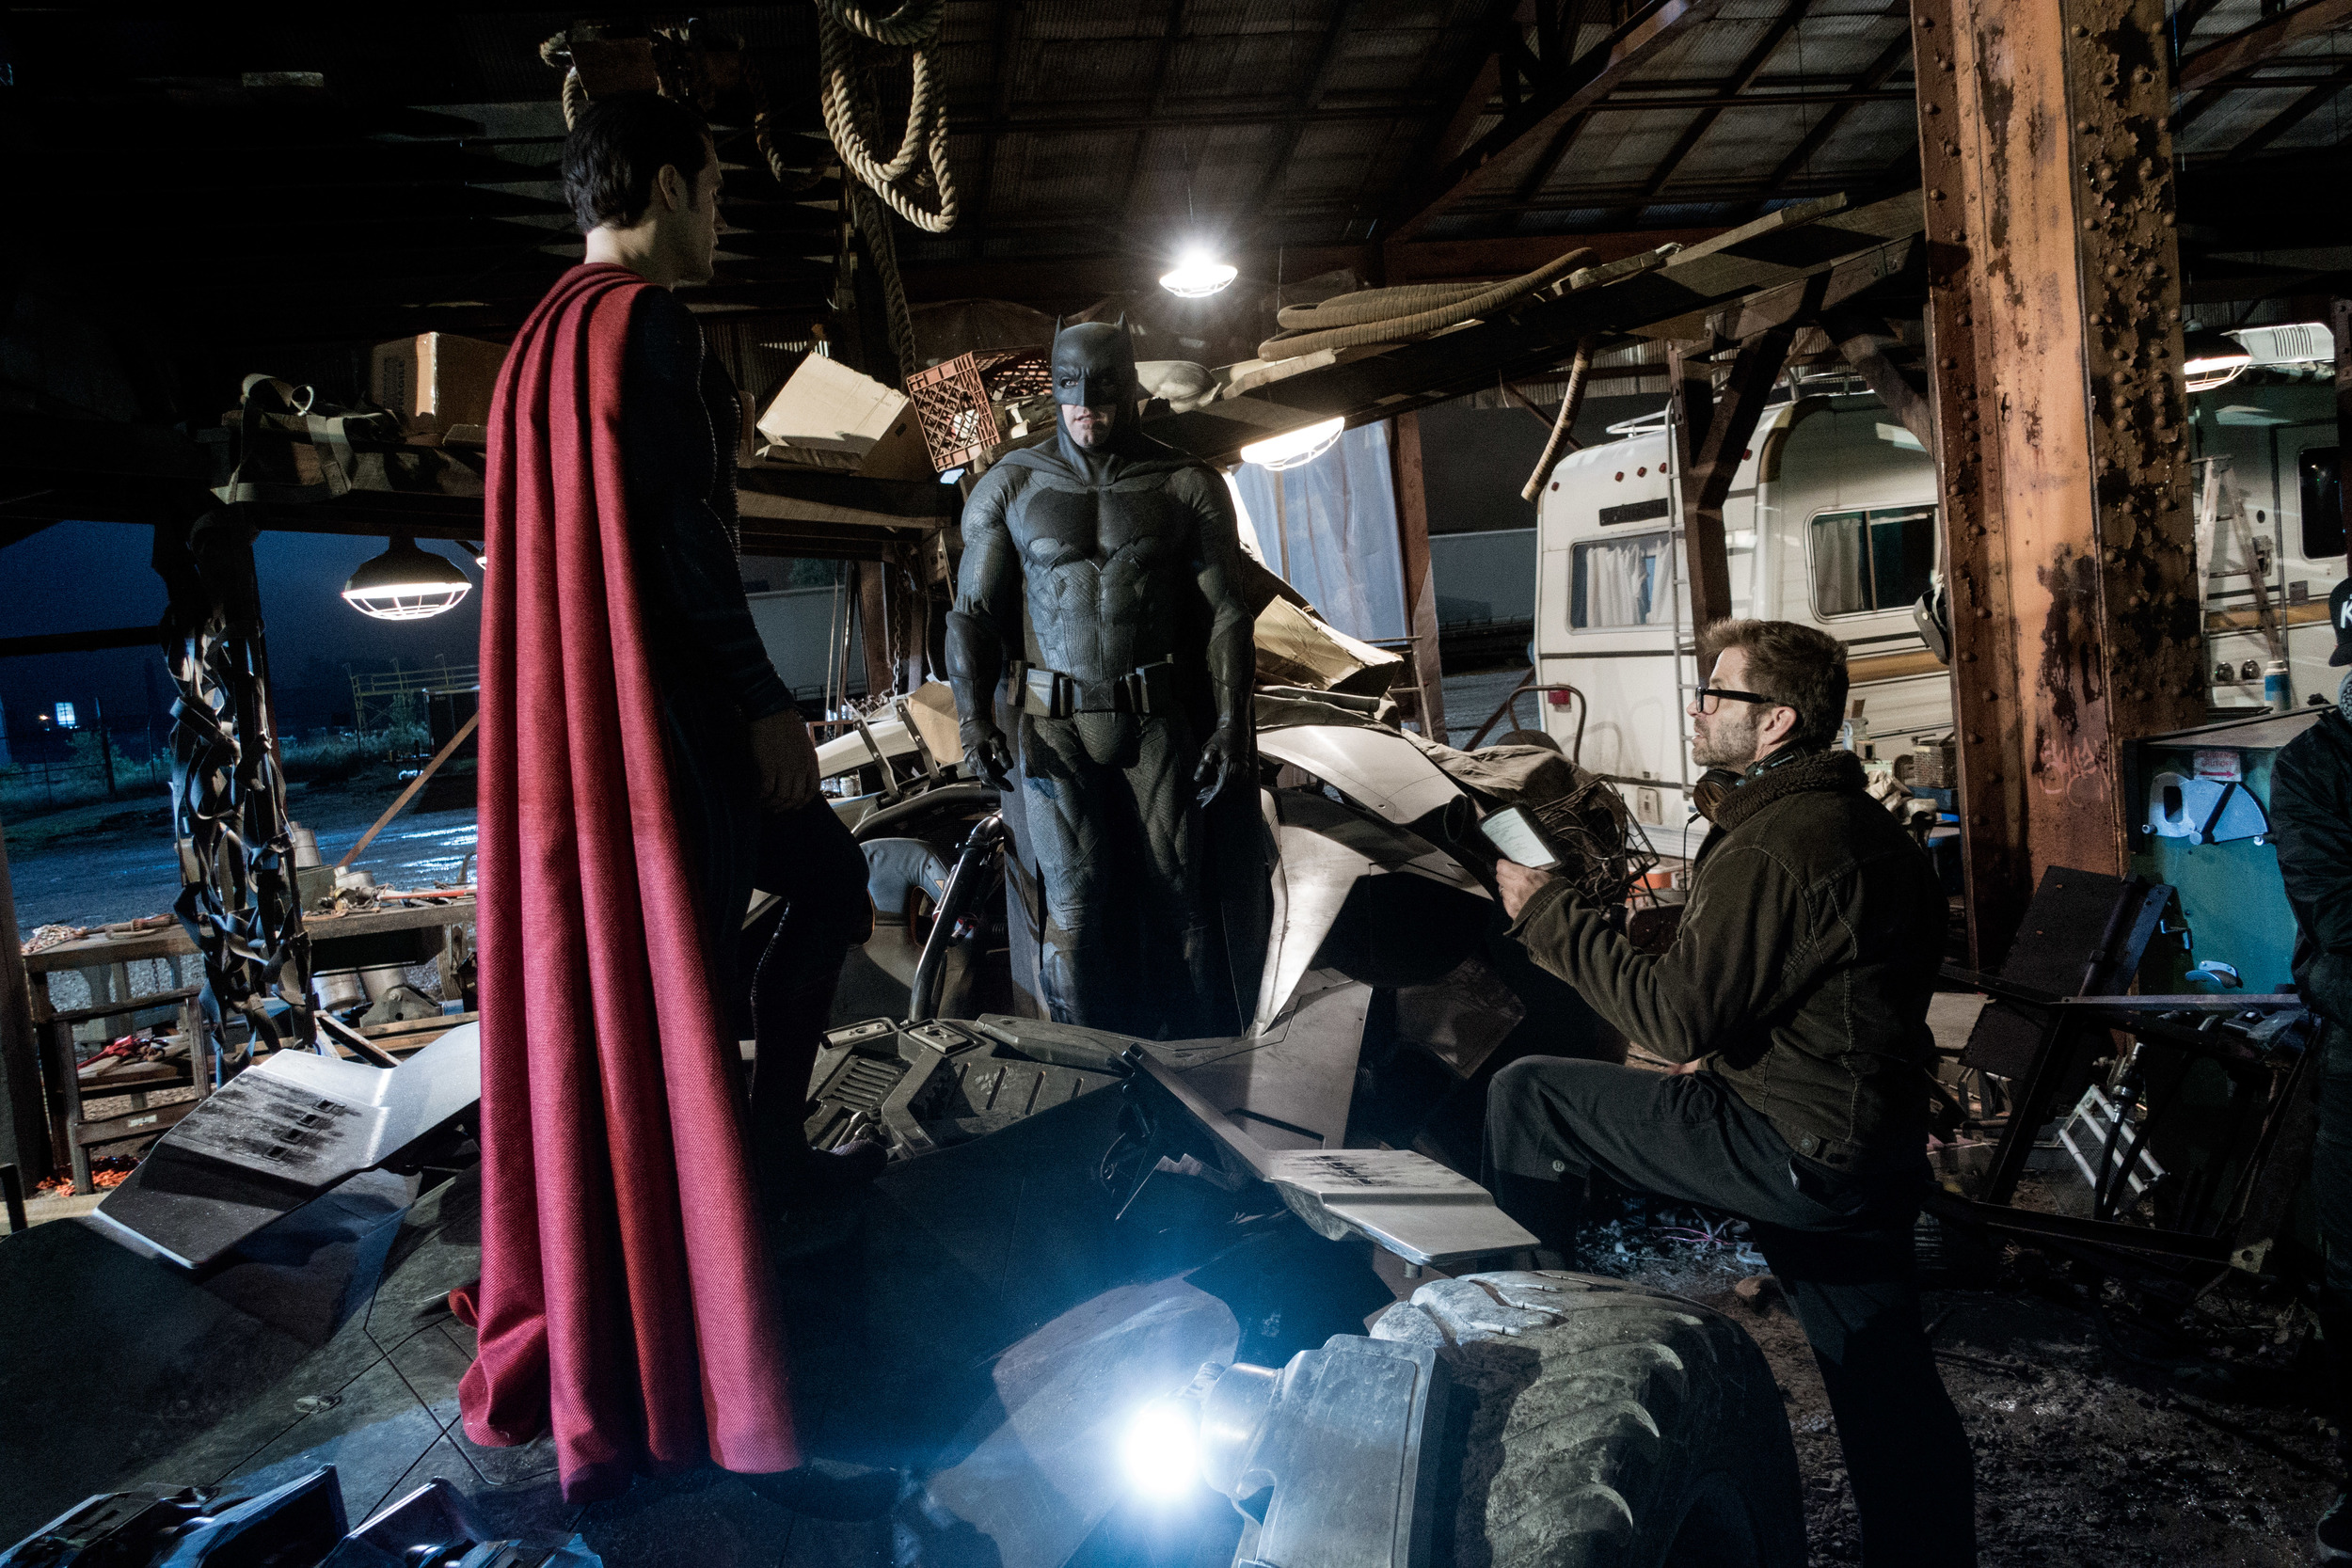 batman-vs-superman-set-photo-zack-snyder-ben-affleck.jpg